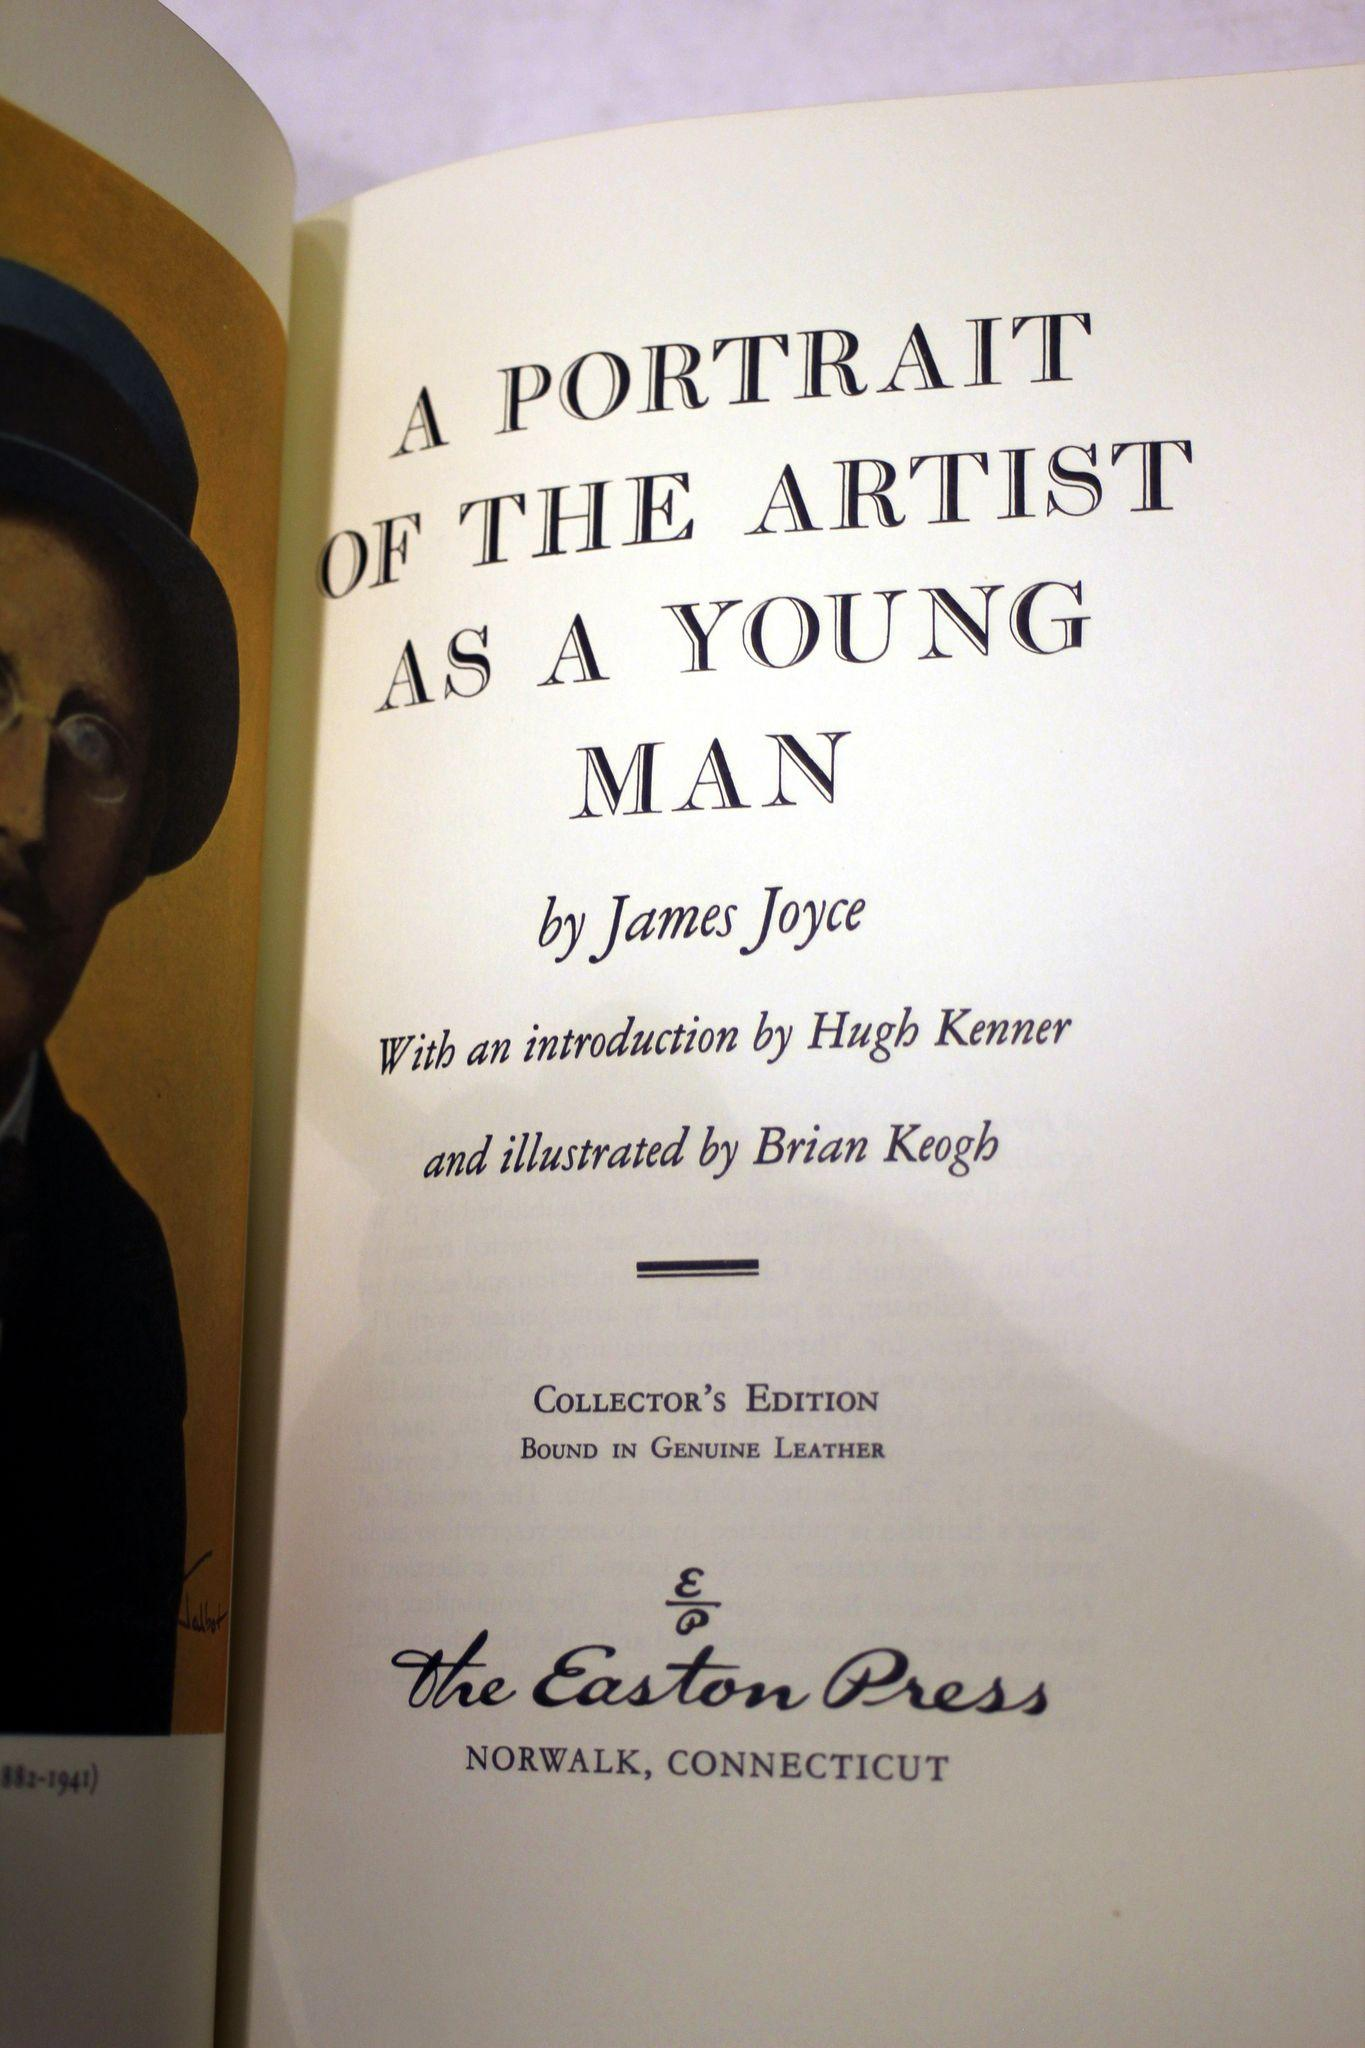 an analysis of a portrait of the artist as a young man by james joyce Joyce, james - a portrait of the artist as a young man (2) the writings of joyce – especially his later novels – make frequent use of interior monologue, both direct and indirect joyce, james .